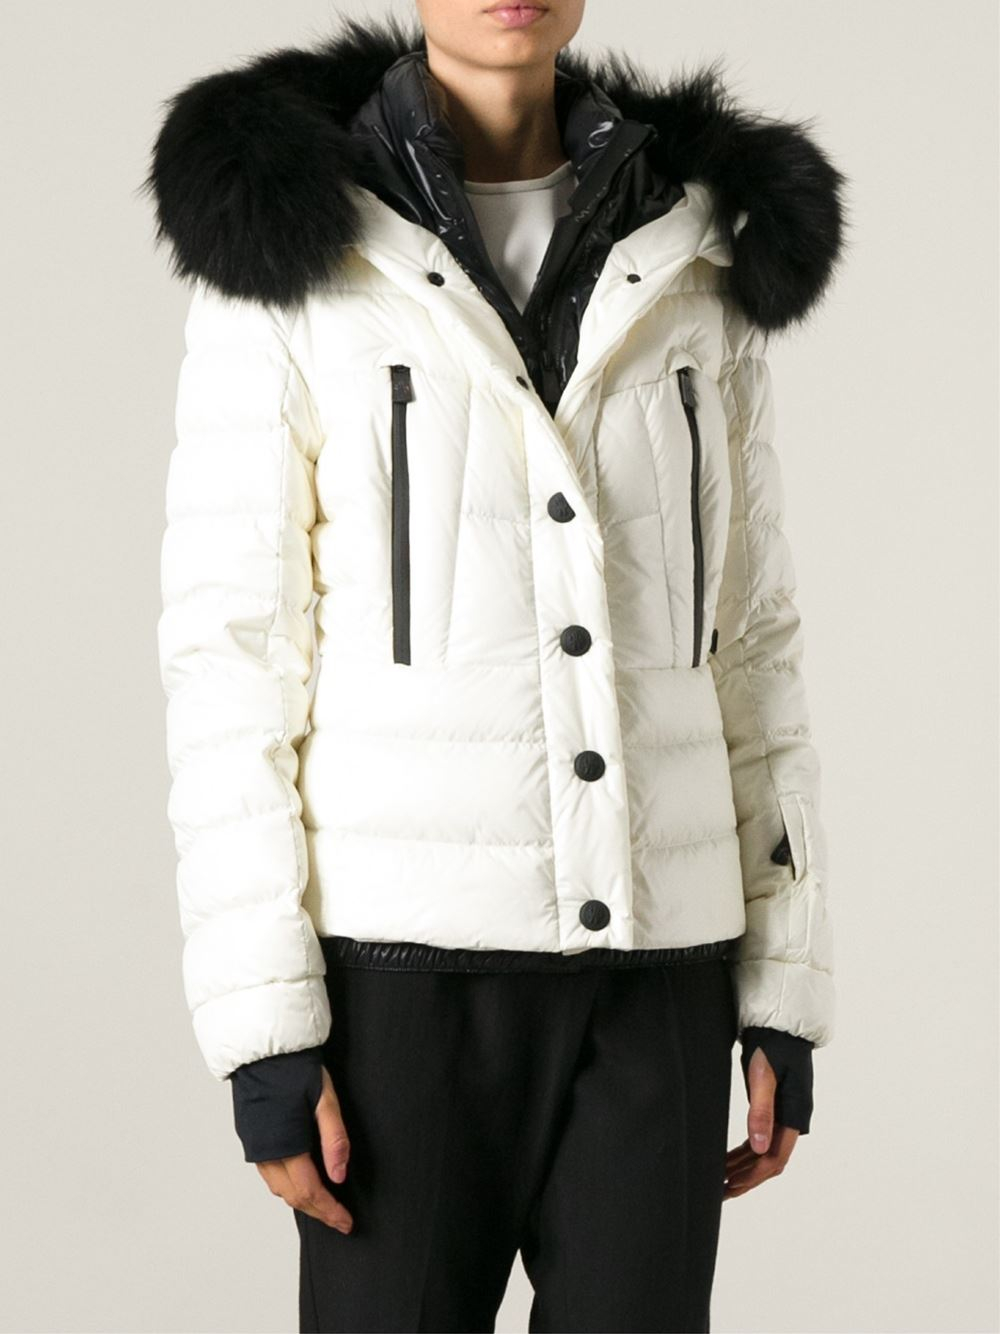 Moncler grenoble Racoon Fur Trimmed Jacket in Black | Lyst